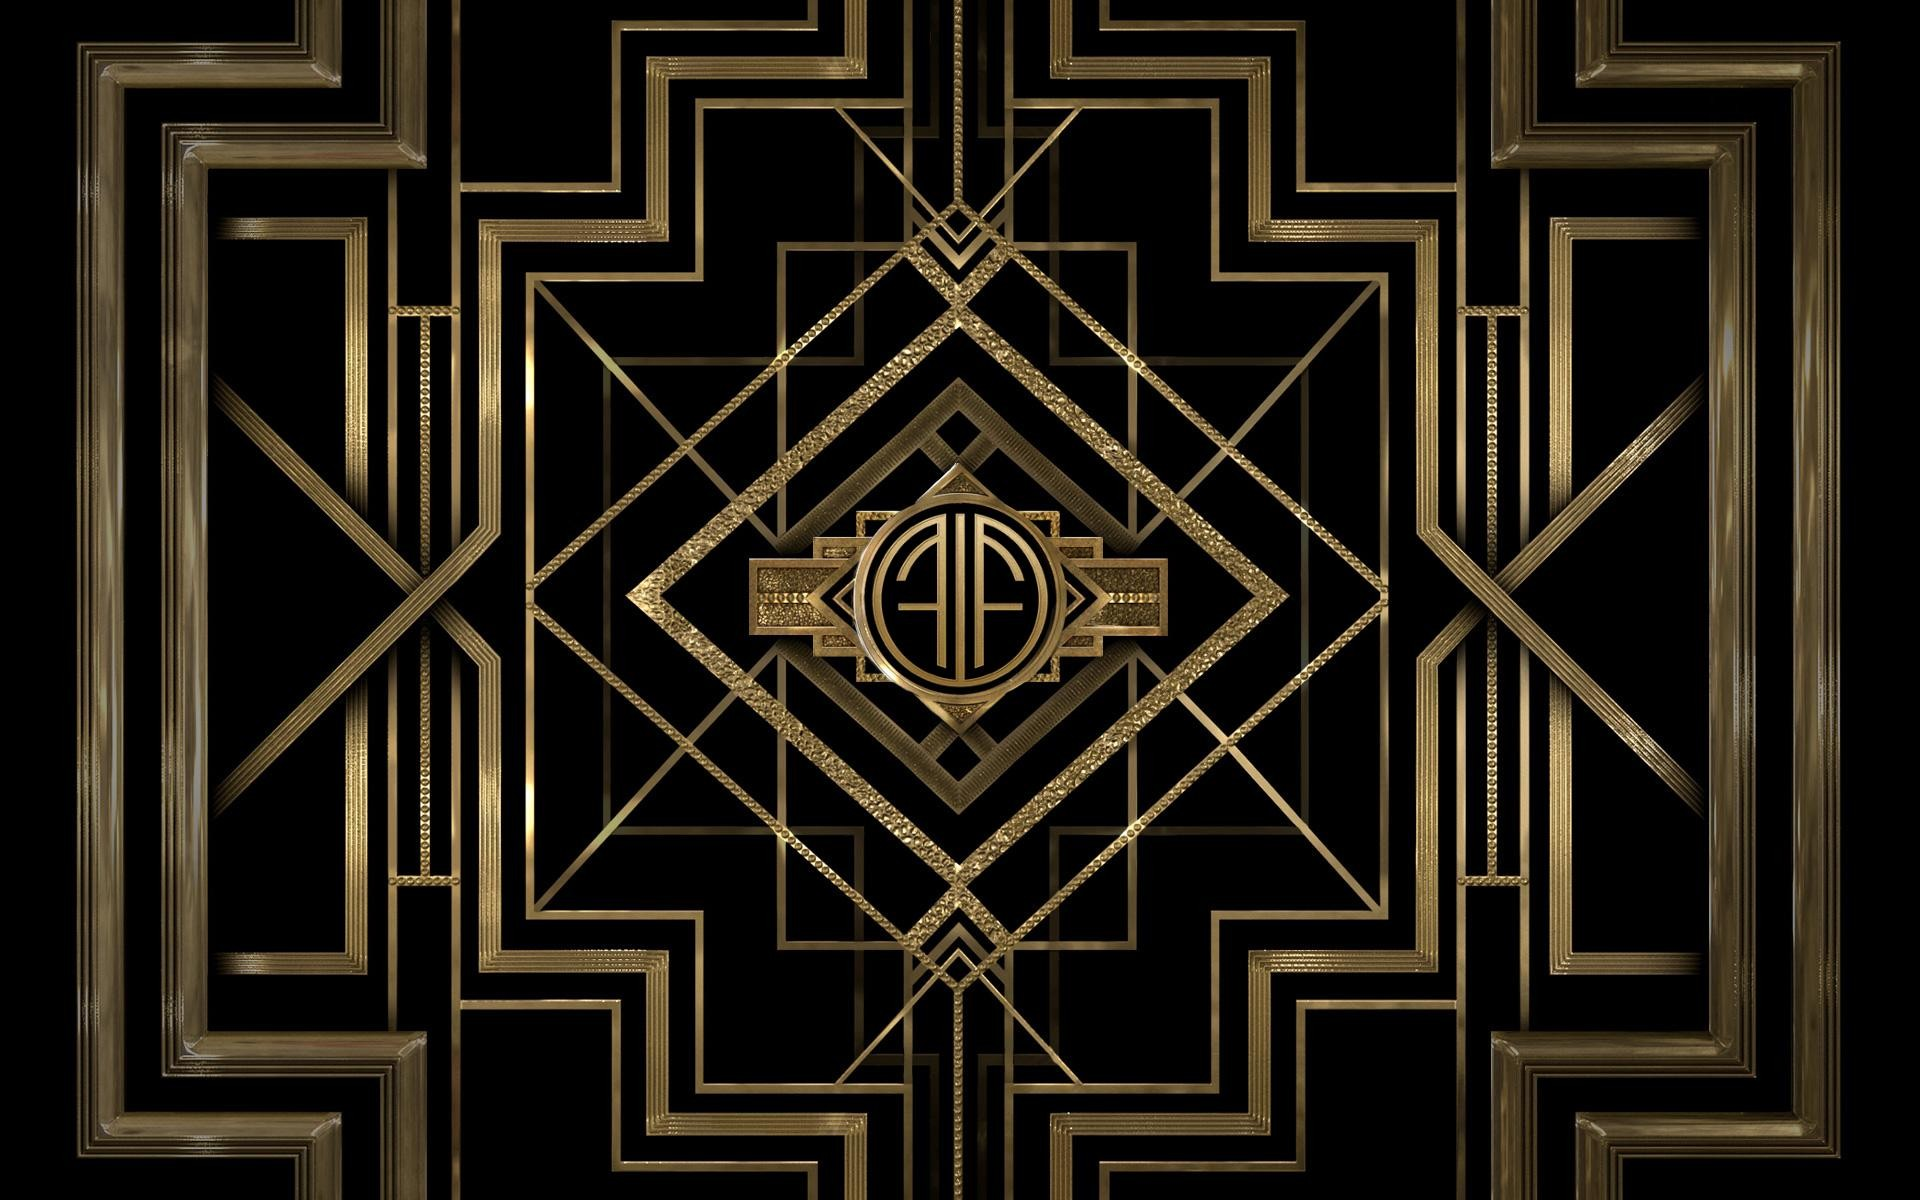 Art Deco Wallpaper 6583 1920x1200 Px HDWallSource